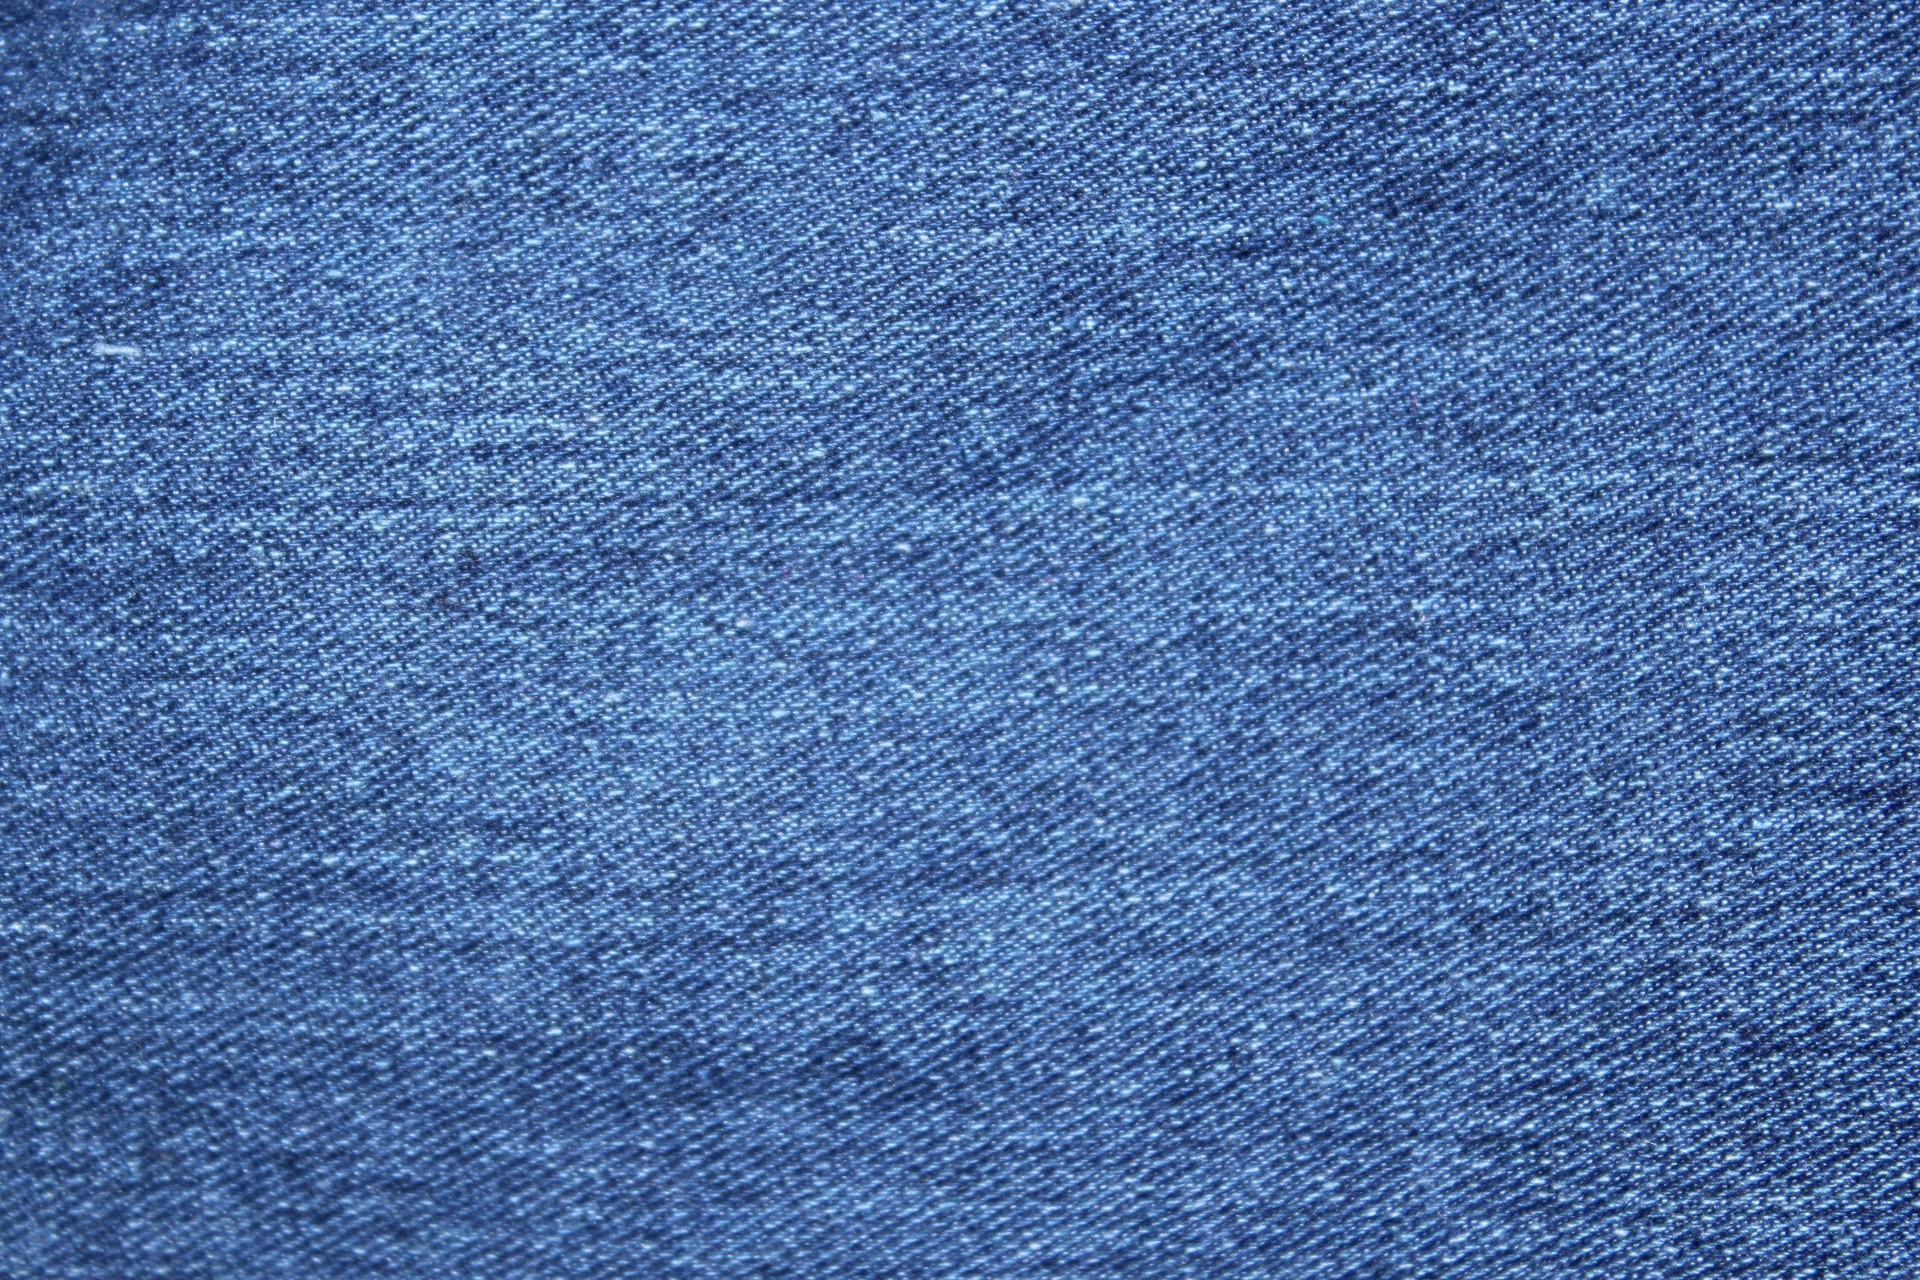 1920x1280 Denim Background 2